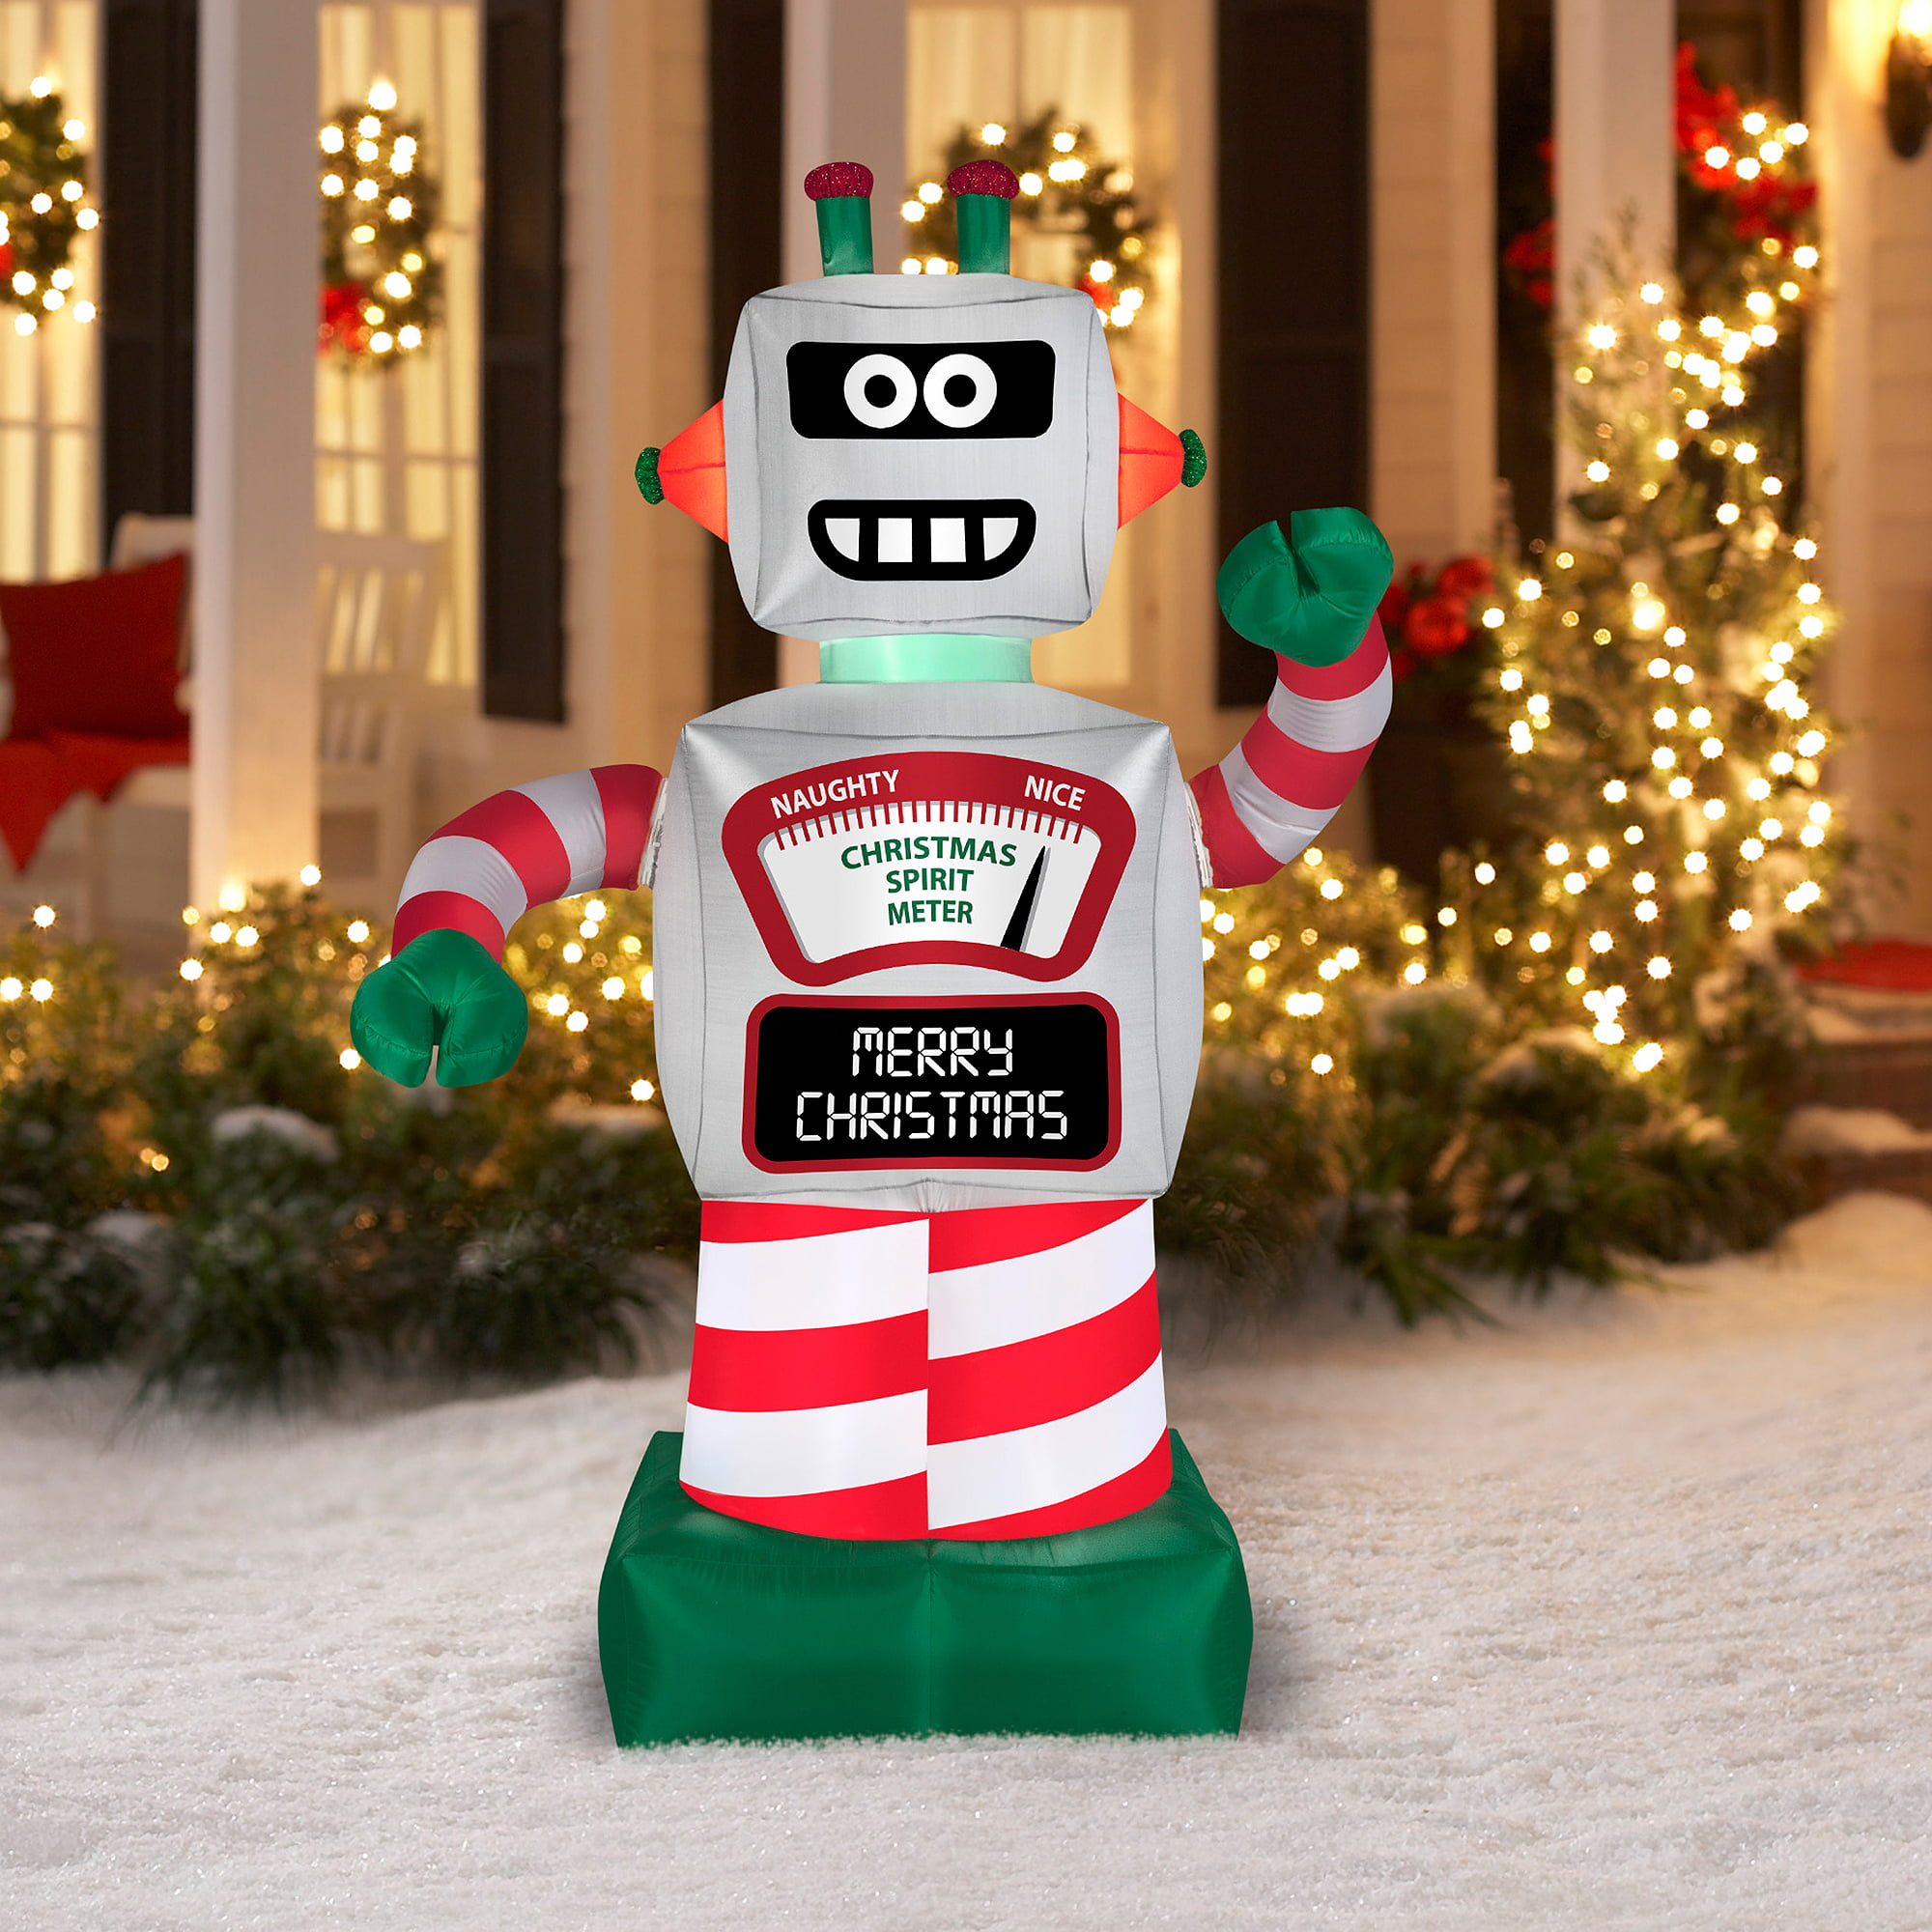 6 animated robot airblown inflatable christmas prop walmartcom - Walmart Com Christmas Decorations